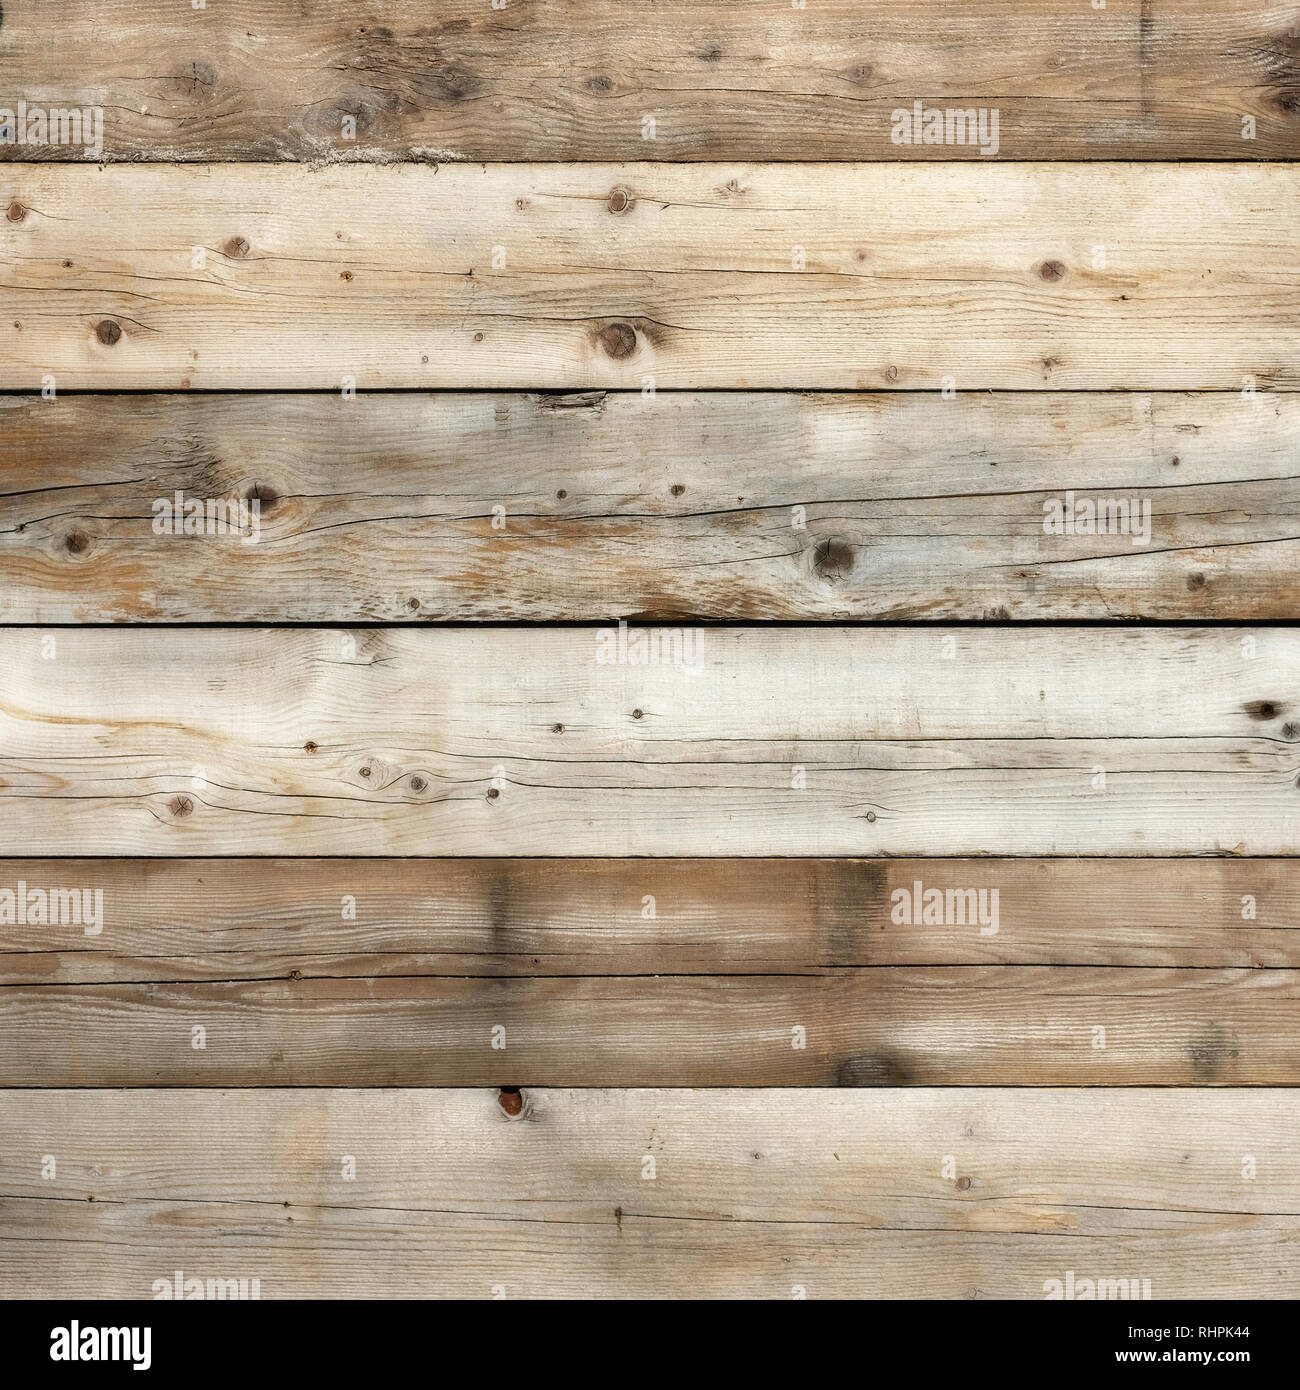 Old wood background square format - Stock Image